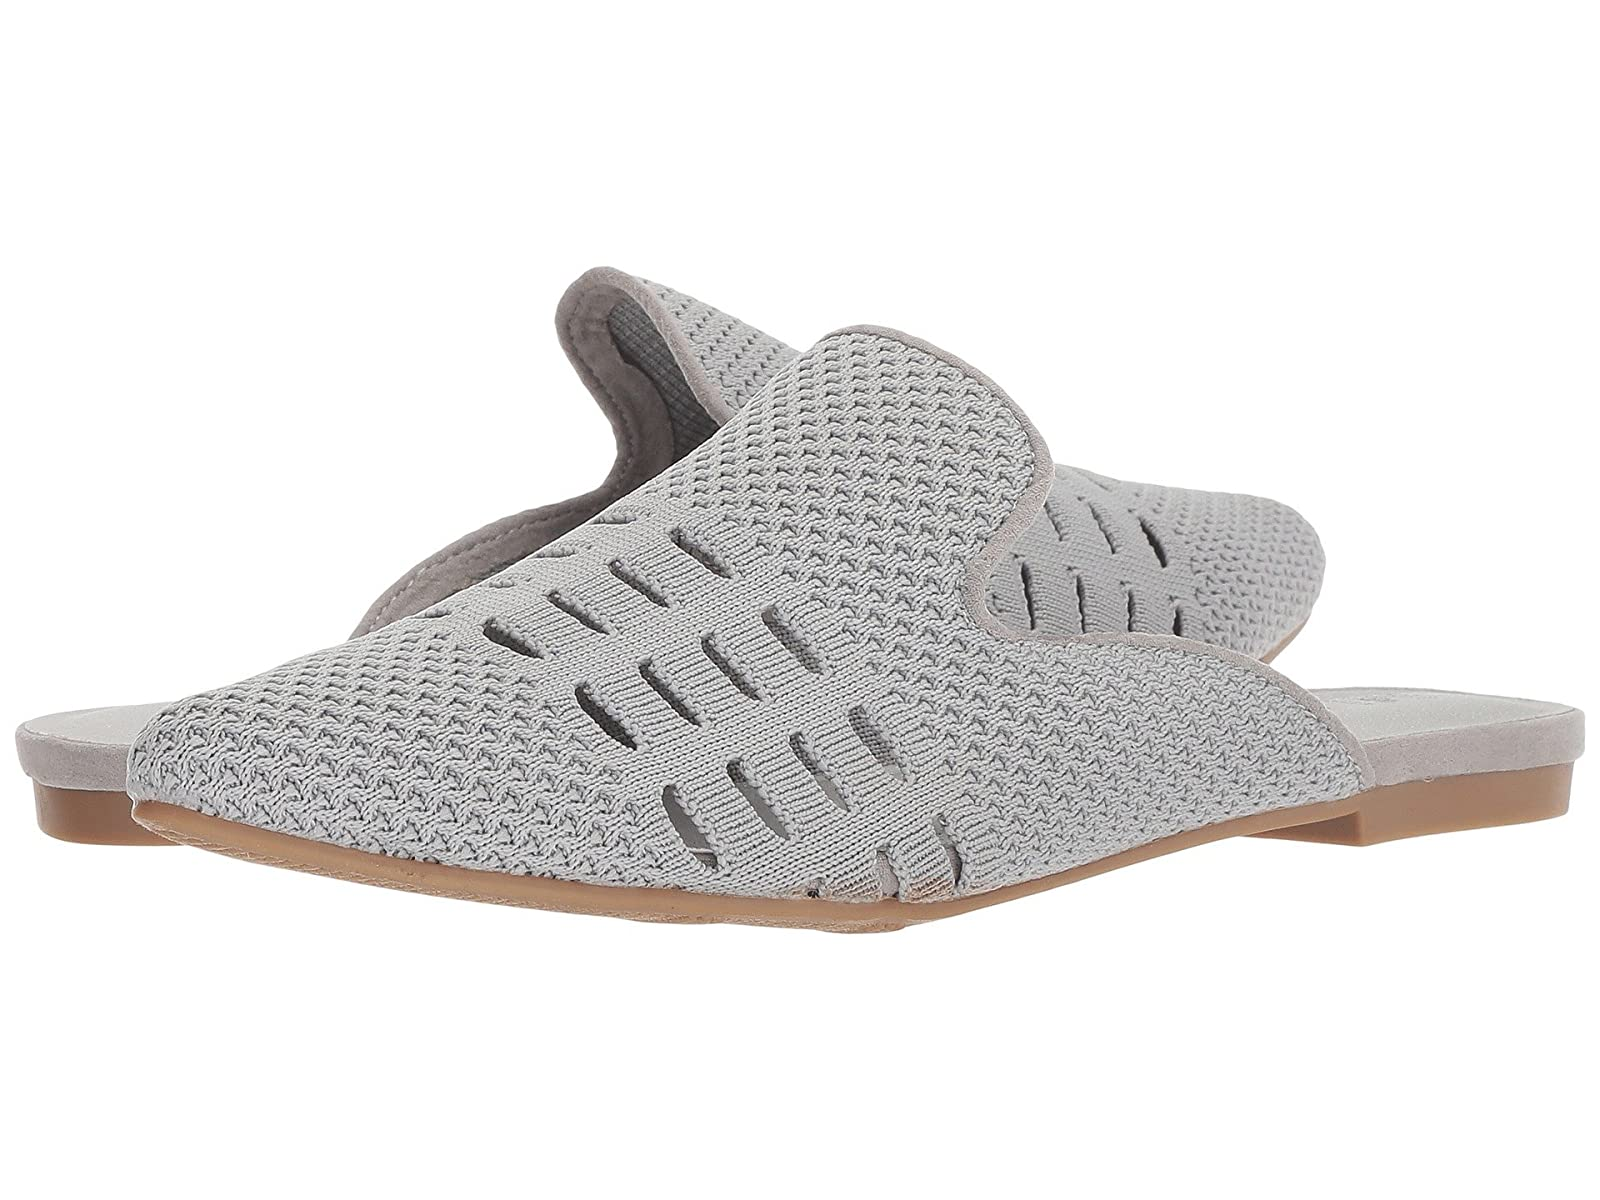 MIA TinaAtmospheric grades have affordable shoes